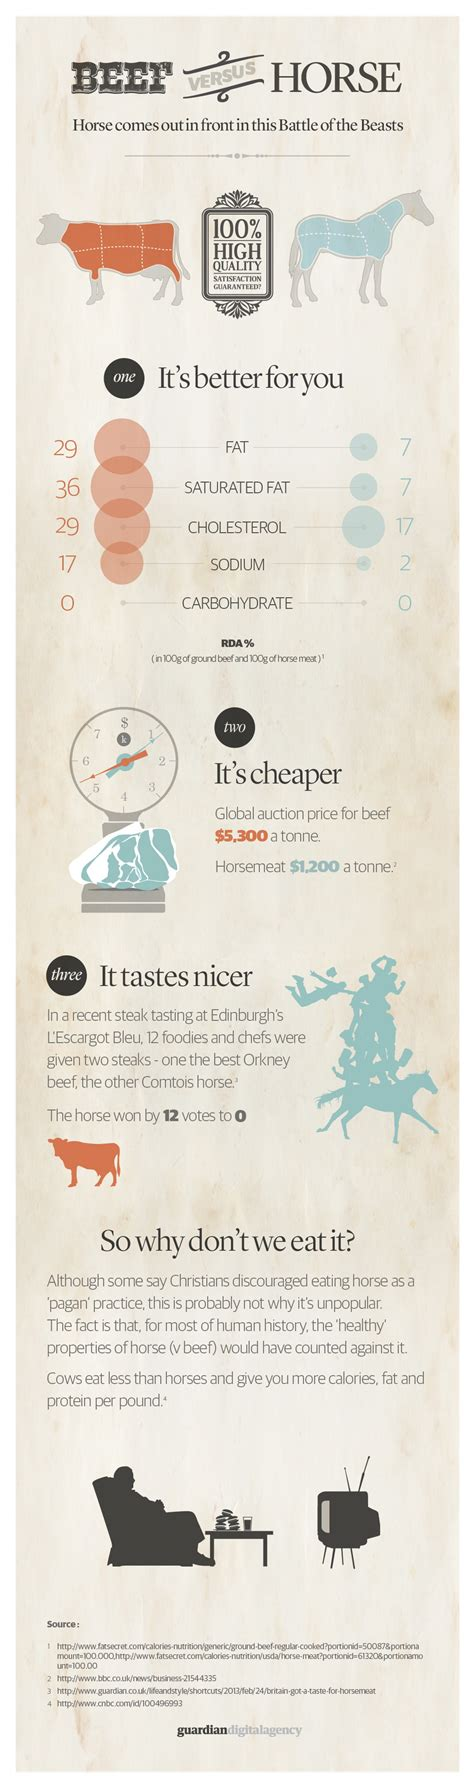 horse beef meat vs versus infographic visual eat eating ly embed horses